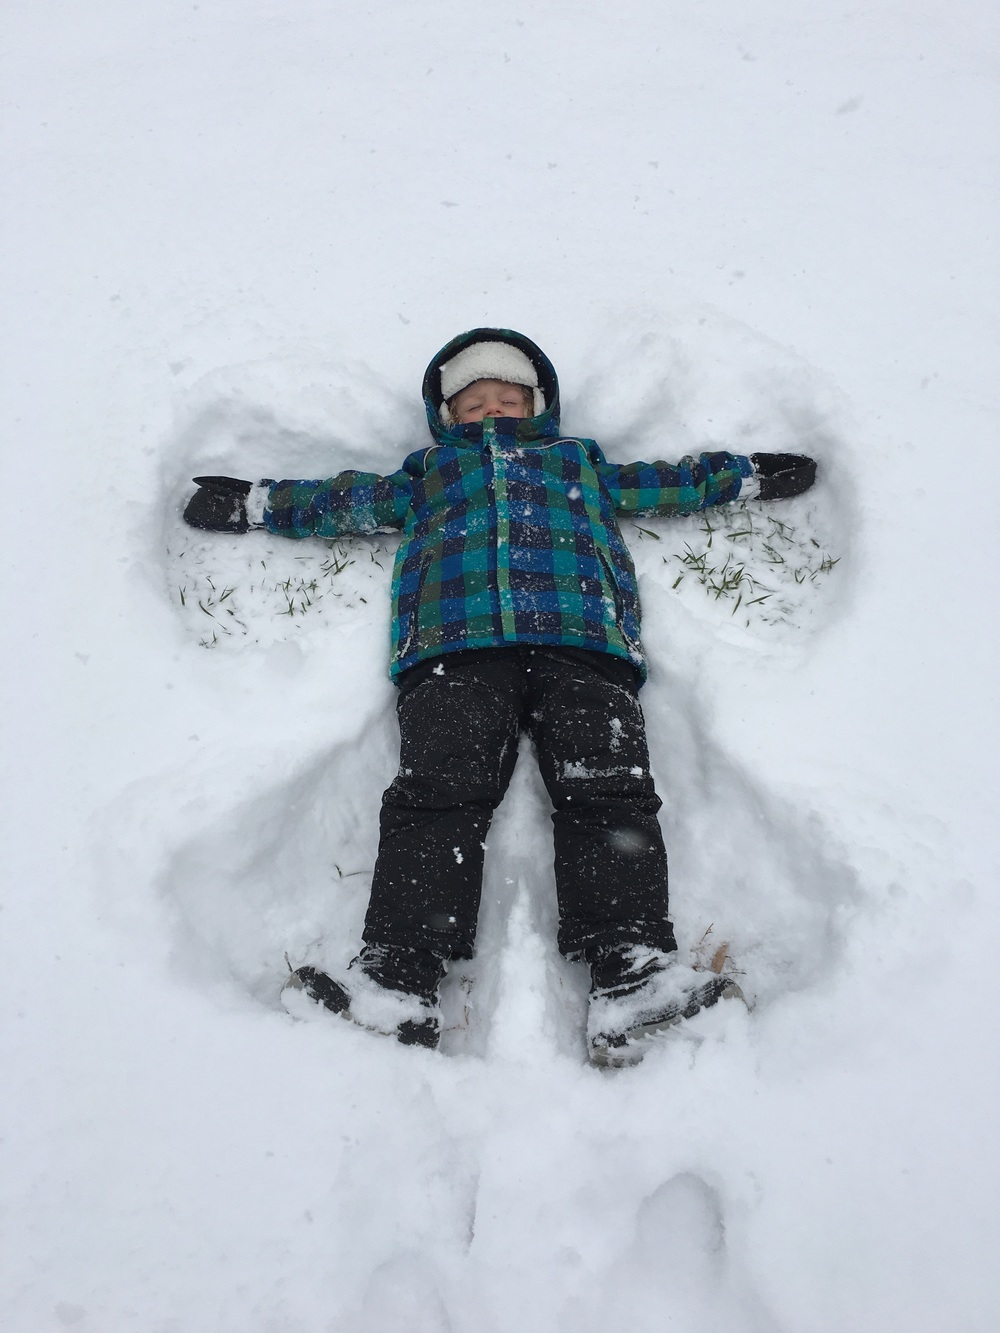 Our handsome little snow angel.